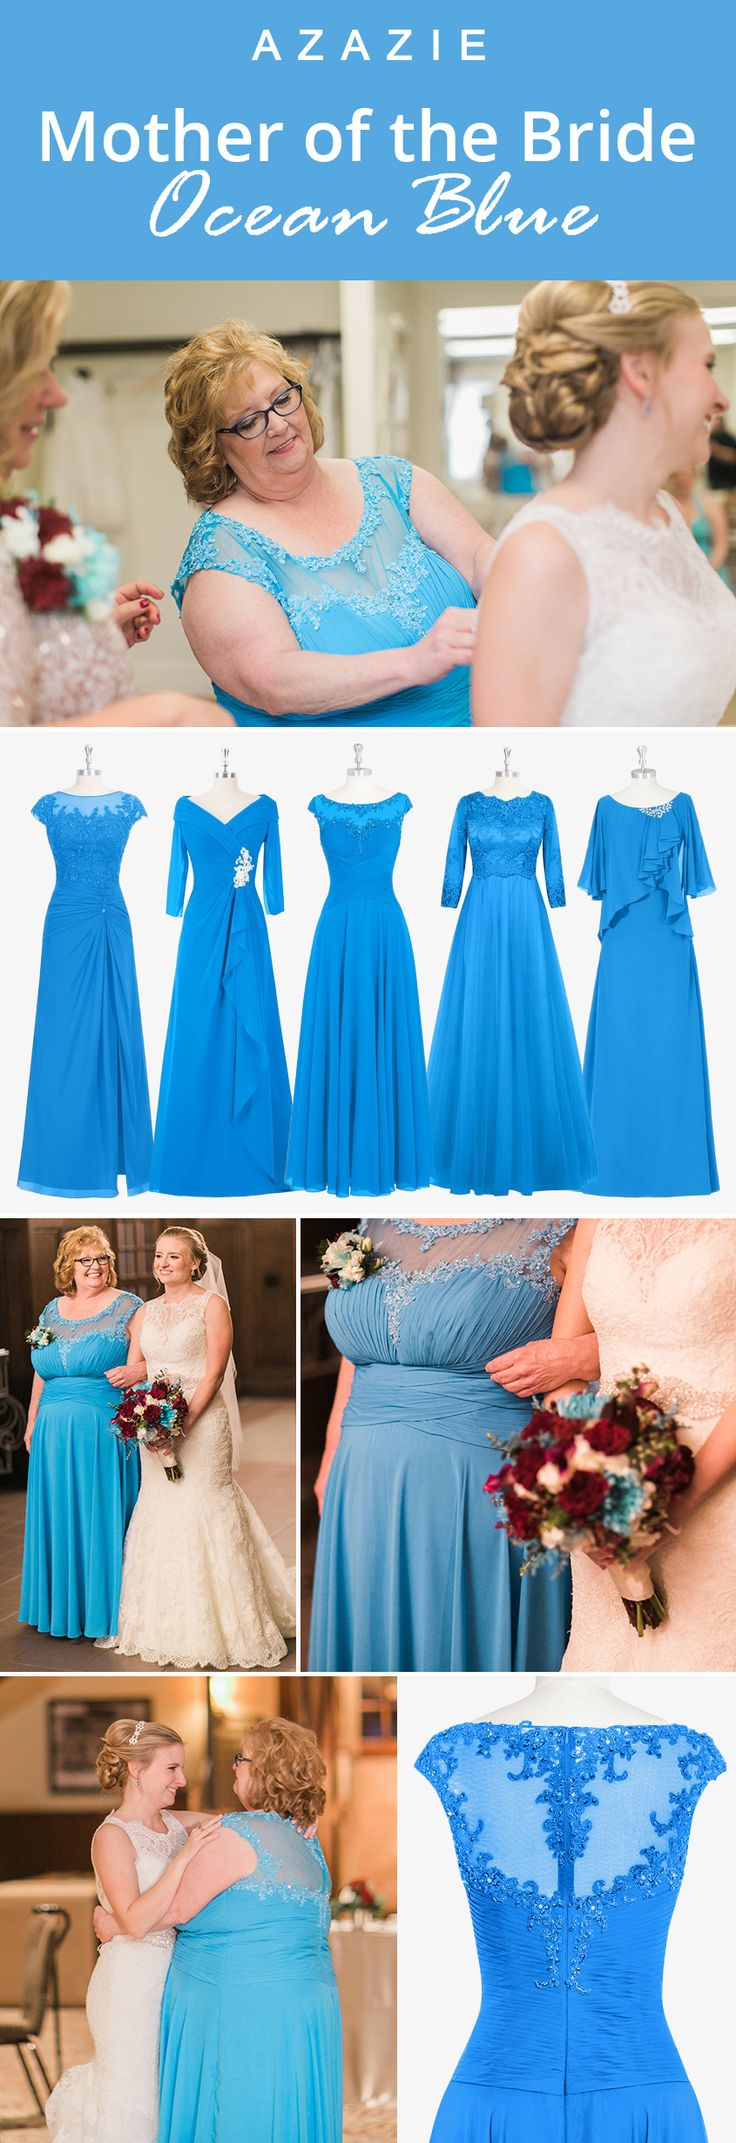 The 23 best Azazie Mother of the Bride & Groom Dresses images on ...